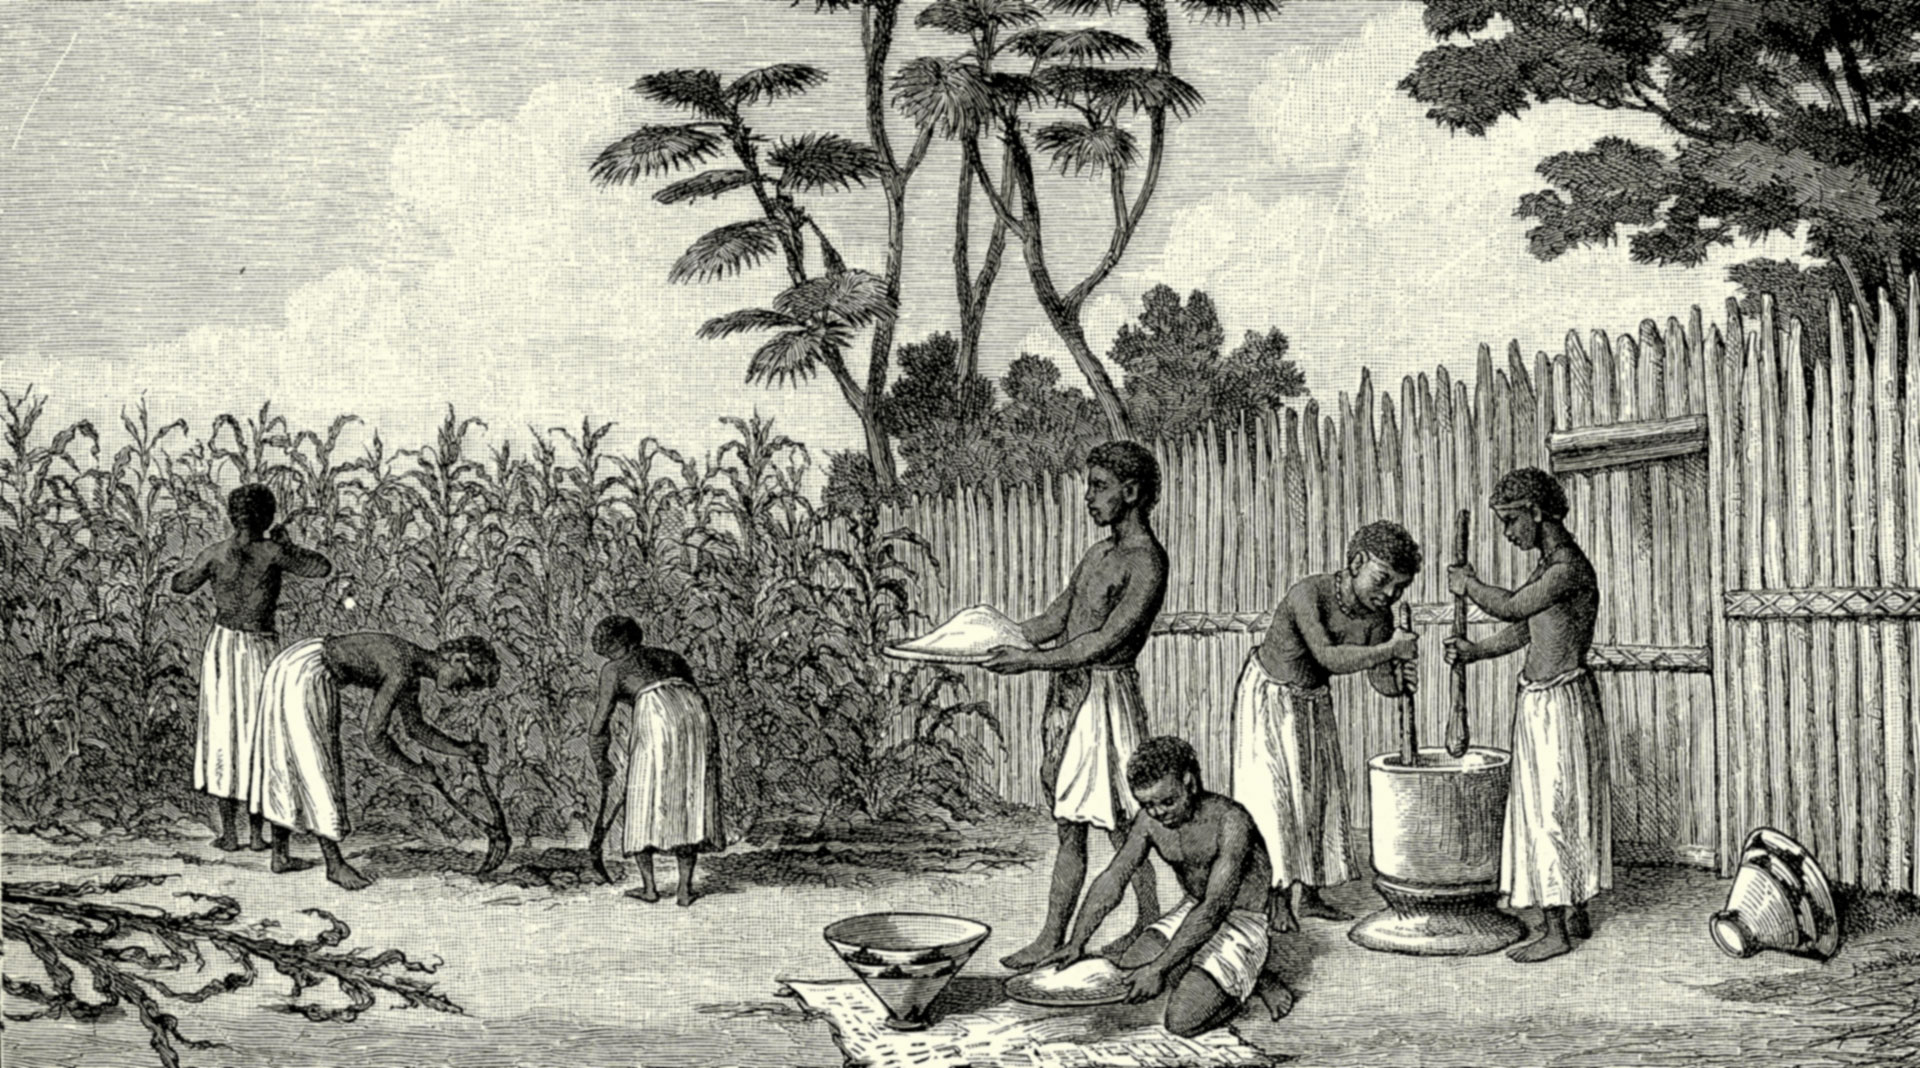 Maize cultivation in Angola